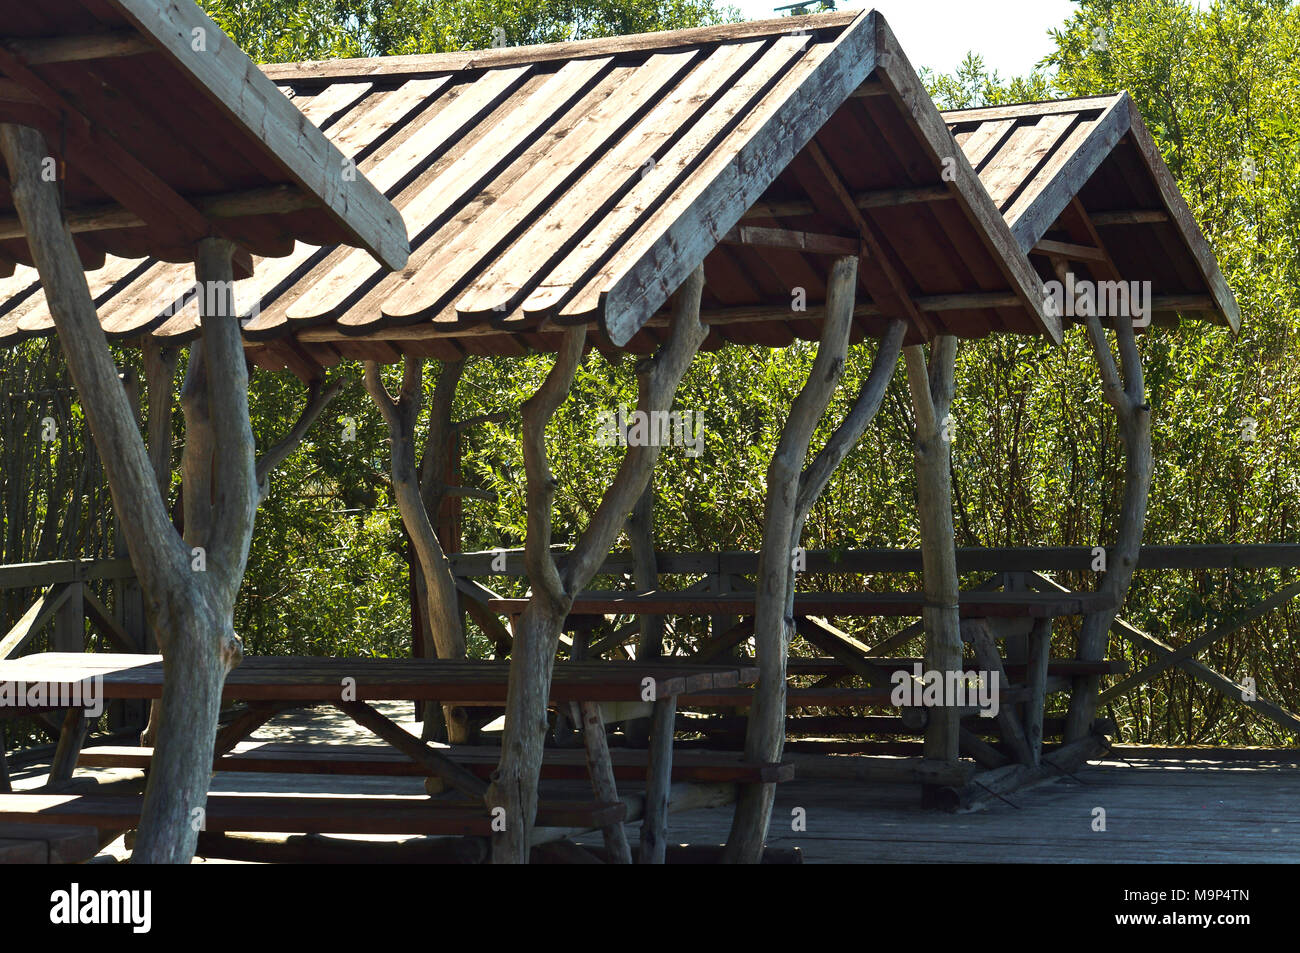 Wondrous Pavilion Wooden Handmade Tables And Benches Made Of Wood Evergreenethics Interior Chair Design Evergreenethicsorg